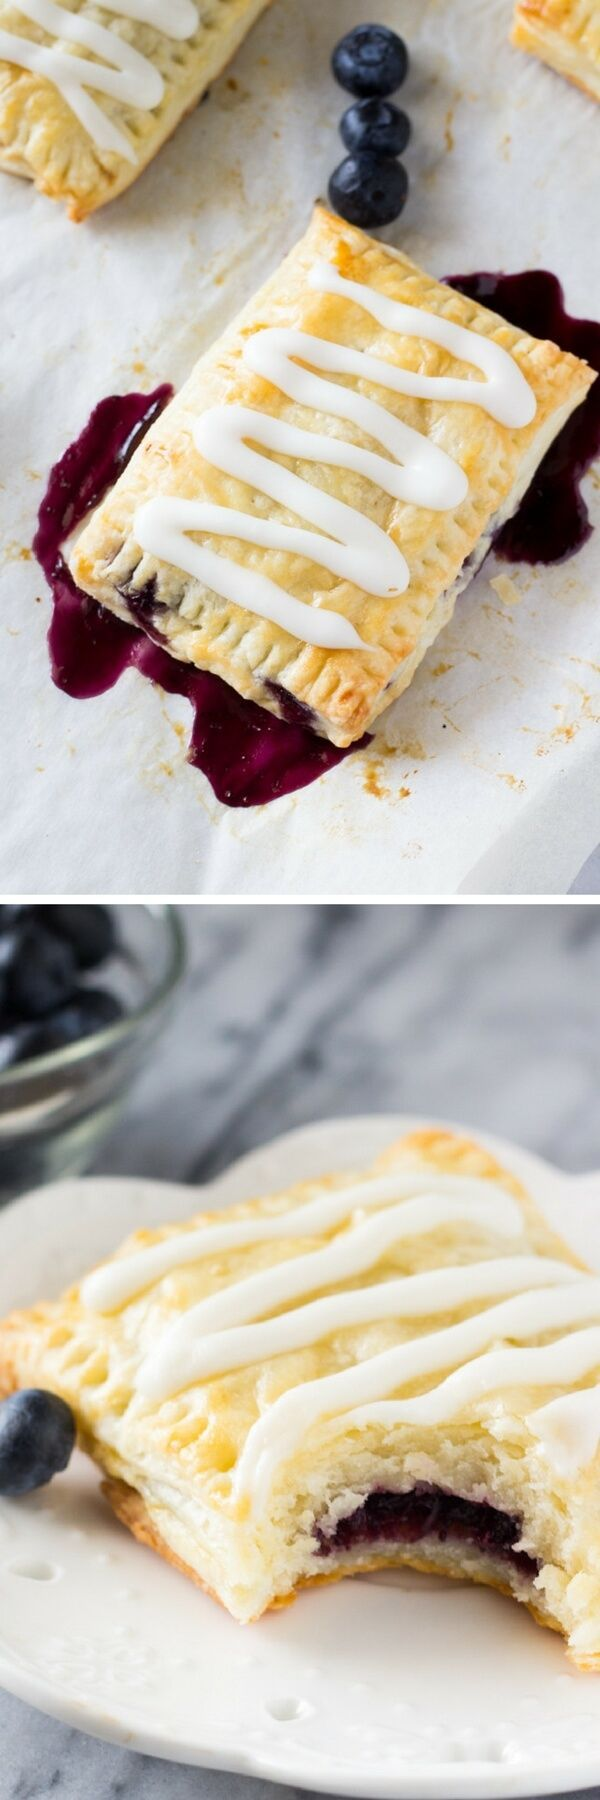 Buttery, flaky homemade blueberry toaster strudels with juicy blueberry centers and sweet vanilla glaze. 1000 times better than the store bought variety - learn to make them at home!